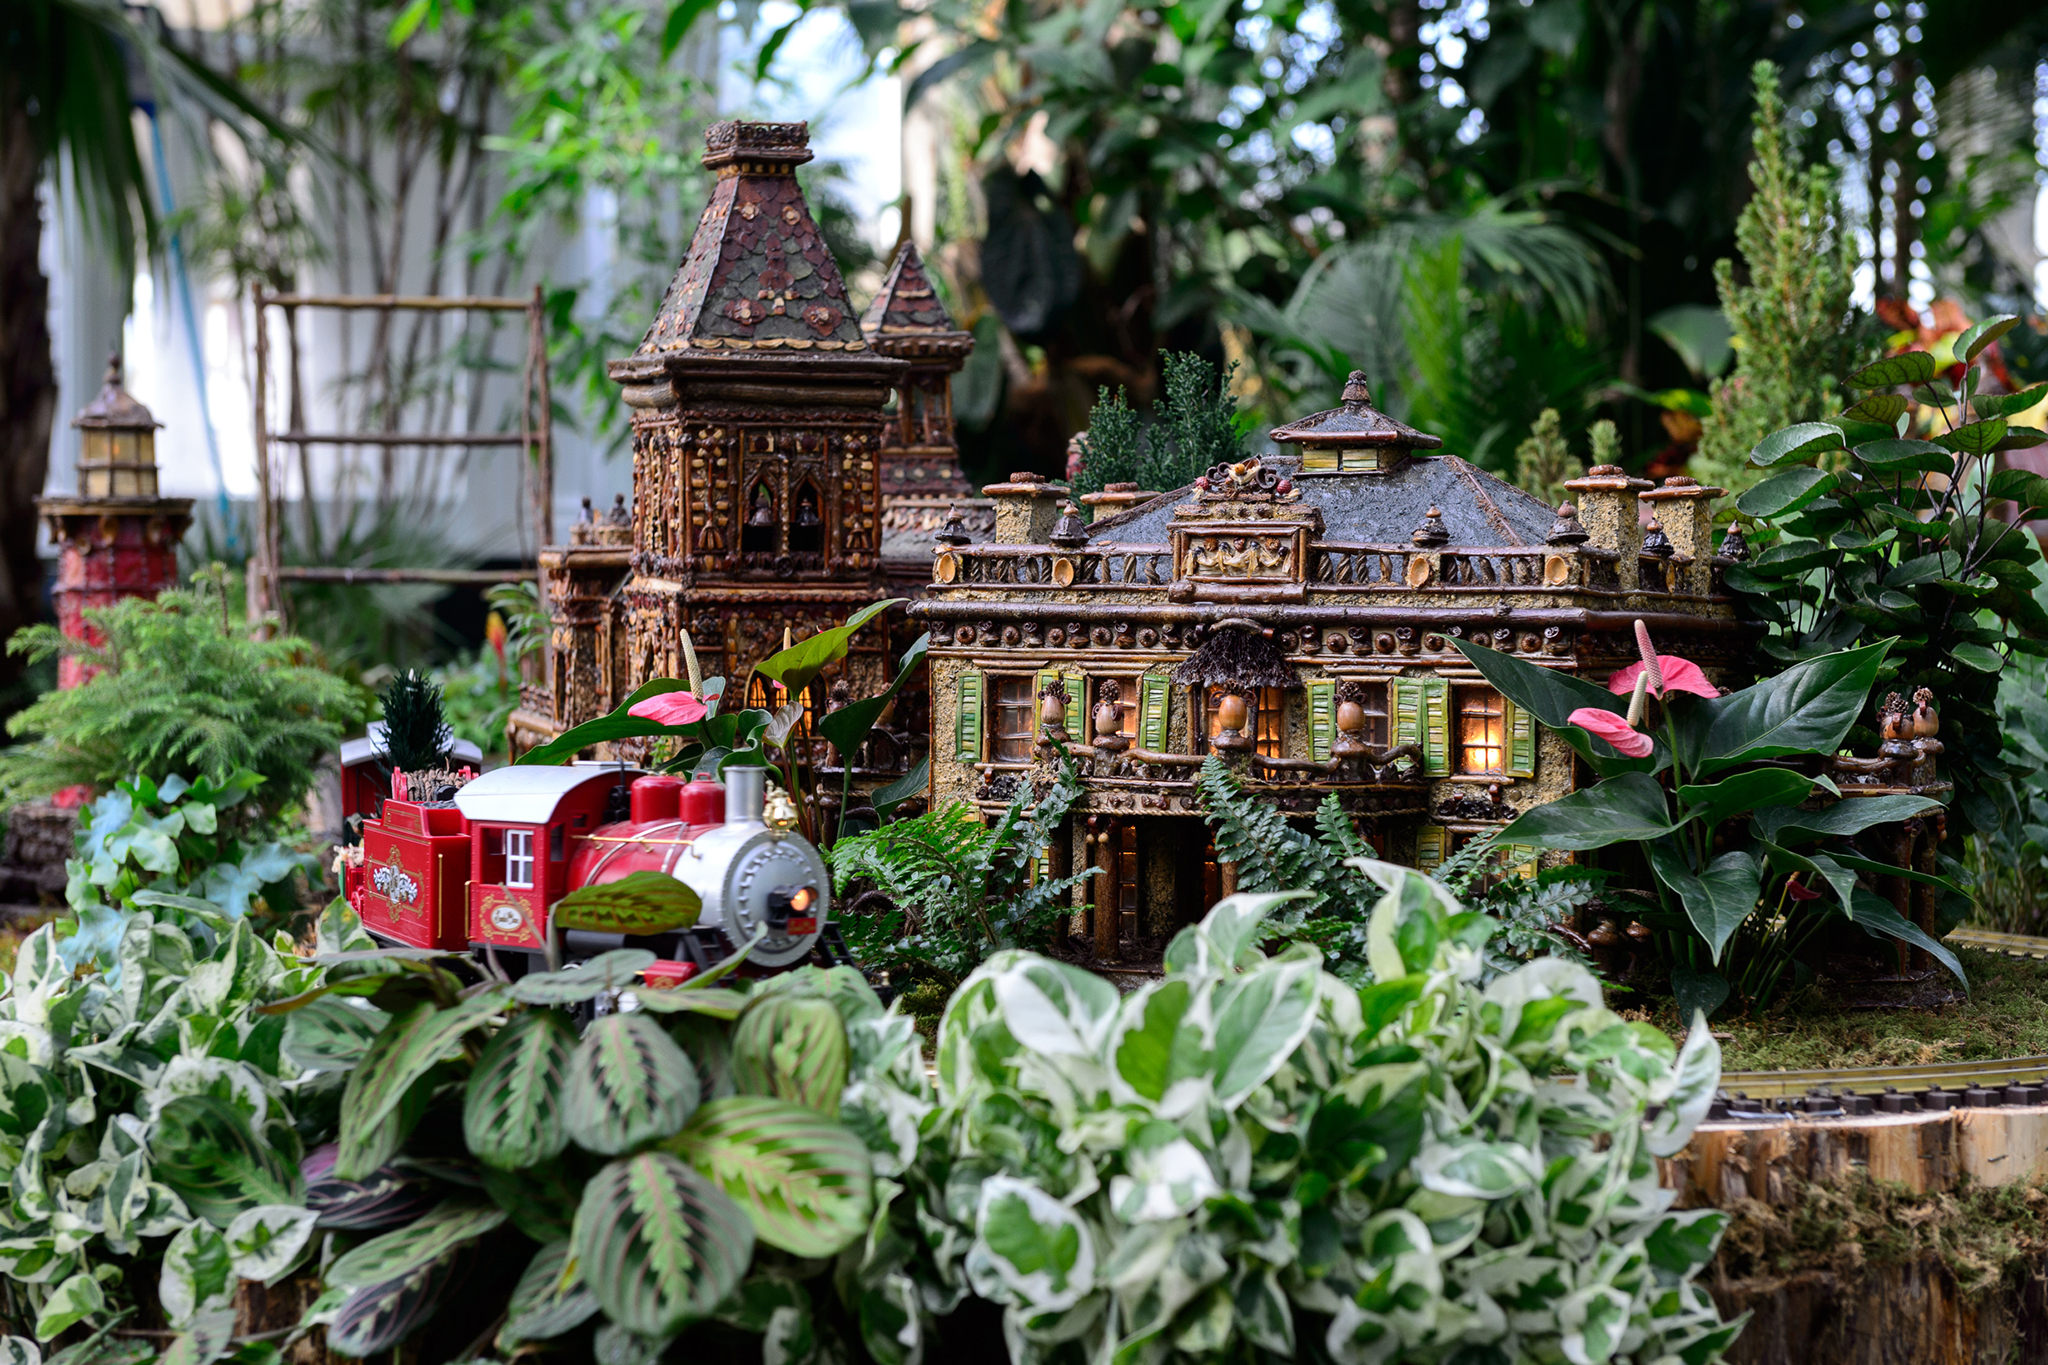 Holiday Train Show 2013 at the New York Botanical Garden